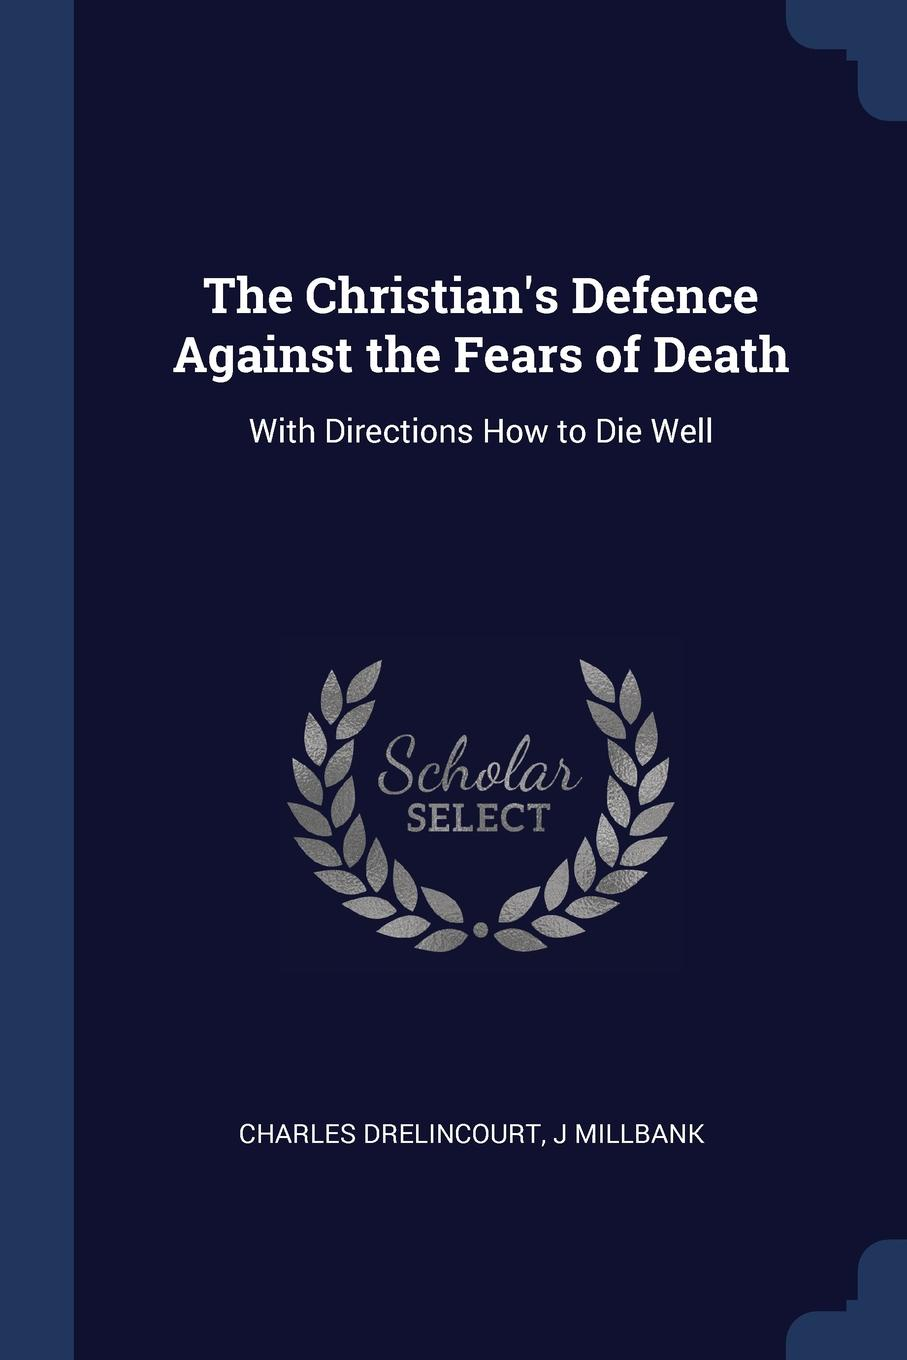 The Christian.s Defence Against the Fears of Death. With Directions How to Die Well. Charles Drelincourt, J Millbank